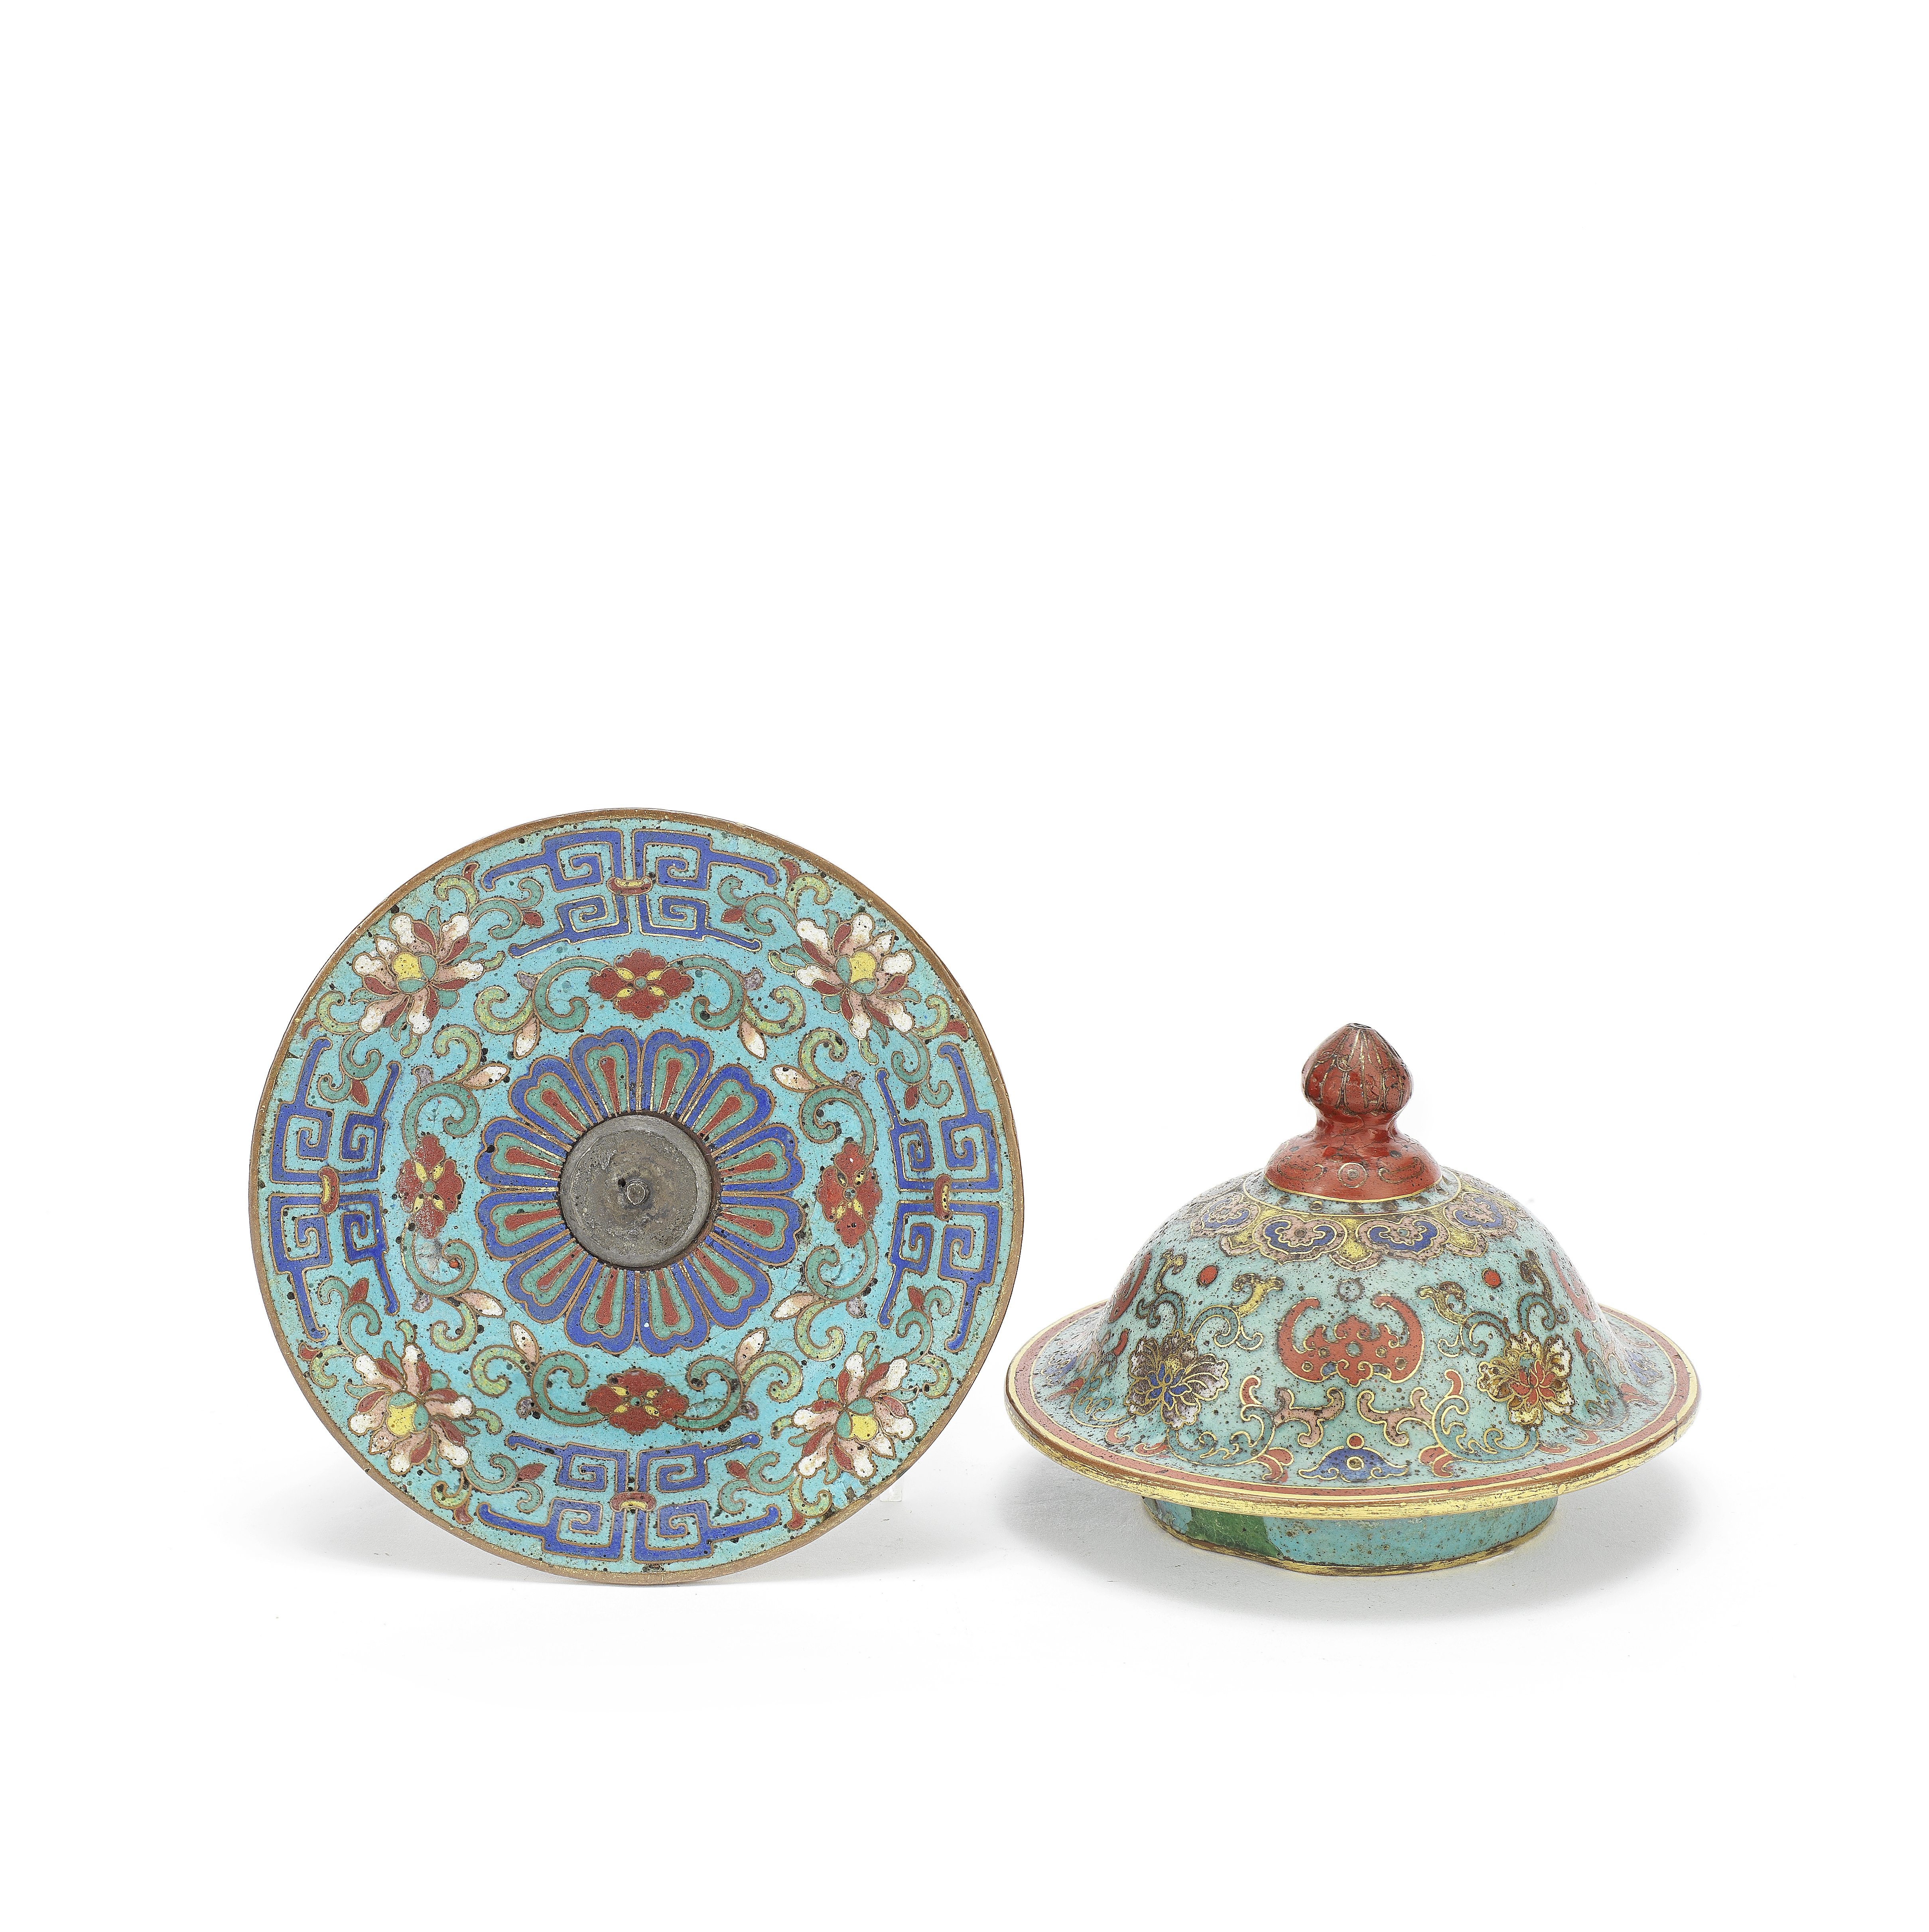 A CLOISONNÉ-ENAMEL COVER AND A SMALL TRAY 18th century (2)